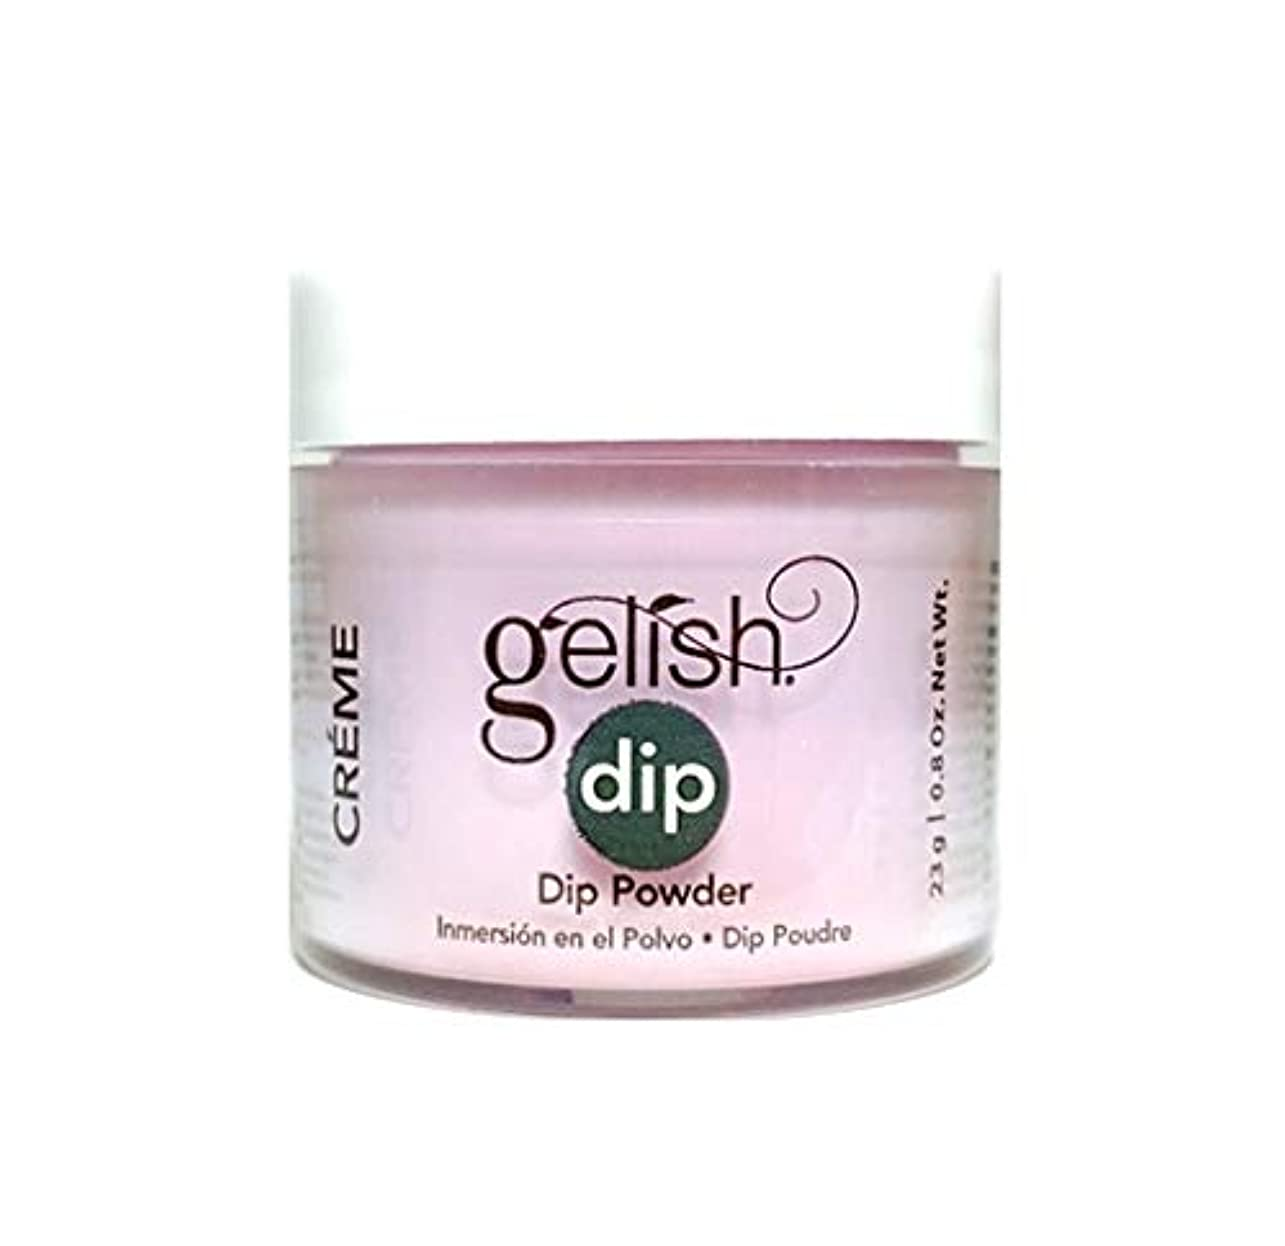 Harmony Gelish - Dip Powder - It's A Lily - 23g / 0.8oz